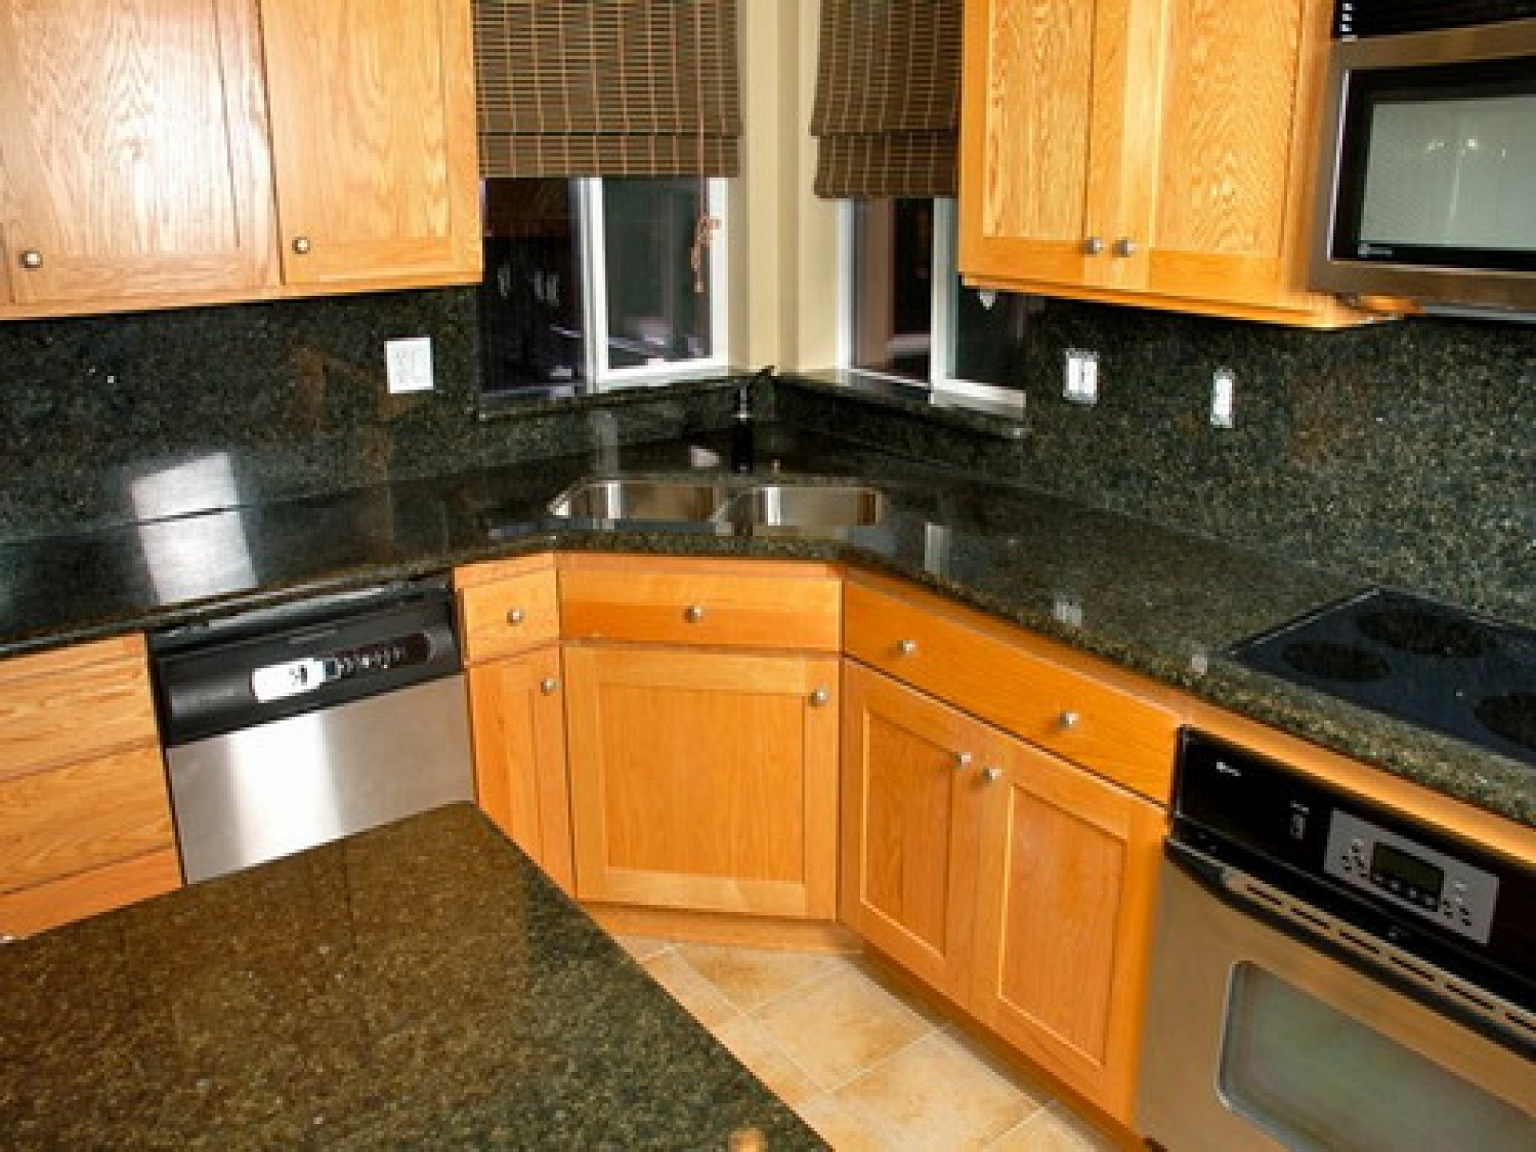 kitchen-corner-sinks